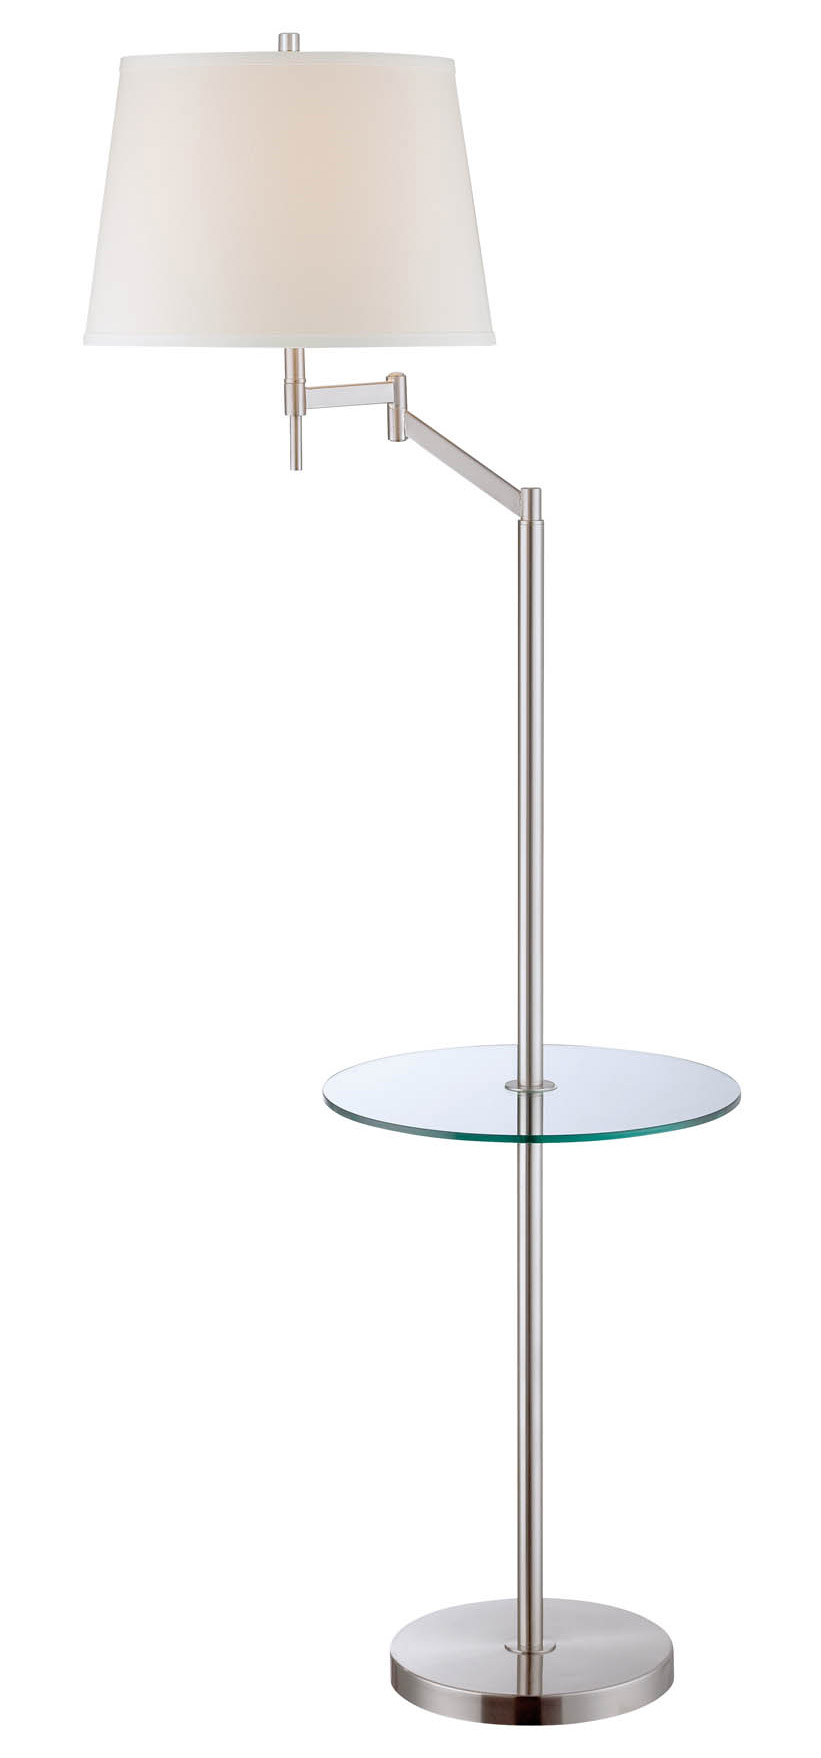 Lite source ls 82139 eveleen swing arm floor lamp with tray for Swing arm floor lamp with glass tray table